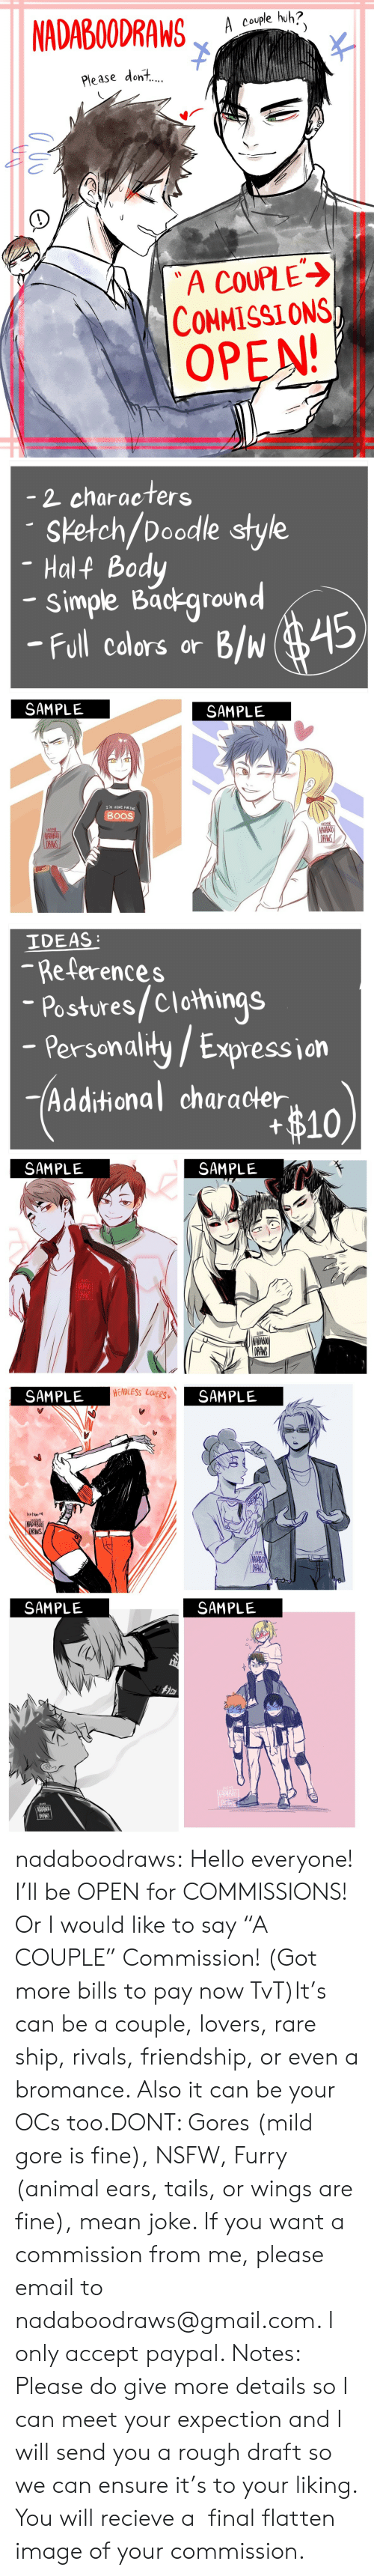 "Recieve: NADABOODRAW  A couple huh?  Please dont,  A COUPLE  CONMISSIONS  OPEN   2 characters  sketch/Doodle style  Half Body  simple Background  -Full cdlors or B/w 45  SAMPLE  SAMPLE  IM HERE FOR THE  BOOS  22013  22018   IDEAS  -References  Postures/Clothings  - Persenalily/ Expression  Personaliły /  -Additional character  #10  SAMPLE  SAMPLE   HEADLESS LOVERS  SAMPLE  SAMPLE  lnktber叫  3109  NADAB  DRAMS  SAMPLE  SAMPLE  0N5 nadaboodraws:  Hello everyone! I'll be OPEN for COMMISSIONS! Or I would like to say ""A COUPLE"" Commission! (Got more bills to pay now TvT)It's can be a couple, lovers, rare ship, rivals, friendship, or even a bromance. Also it can be your OCs too.DONT: Gores (mild gore is fine), NSFW, Furry (animal ears, tails, or wings are fine), mean joke. If you want a commission from me, please email to nadaboodraws@gmail.com. I only accept paypal. Notes: Please do give more details so I can meet your expection and I will send you a rough draft so we can ensure it's to your liking. You will recieve a  final flatten image of your commission."